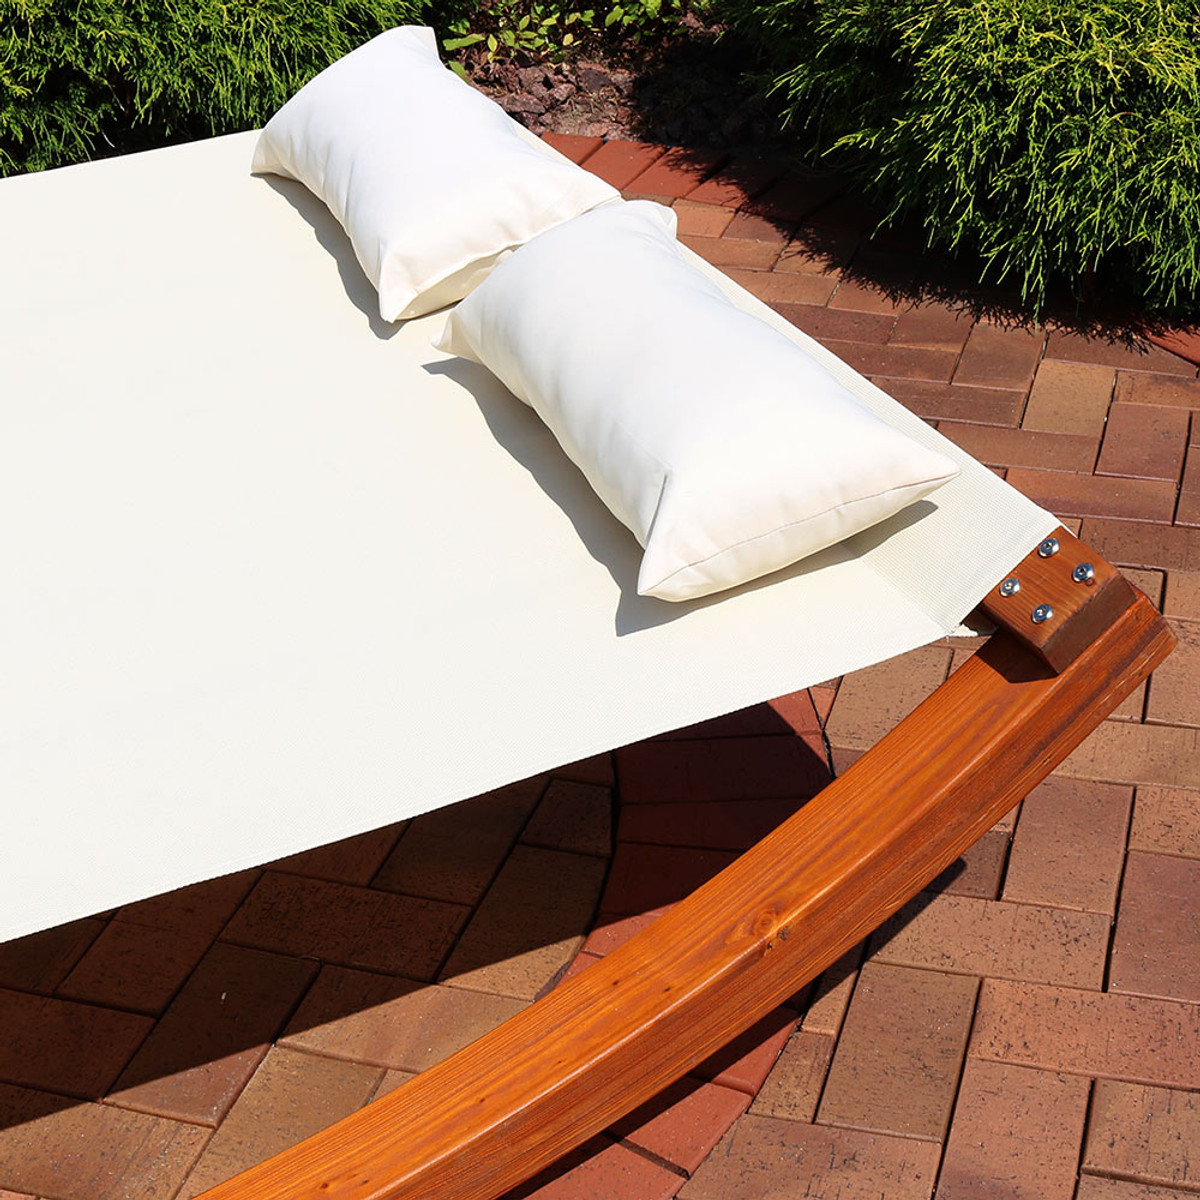 Sunnydaze Natural Colored Outdoor 2 Person Wooden Lounger